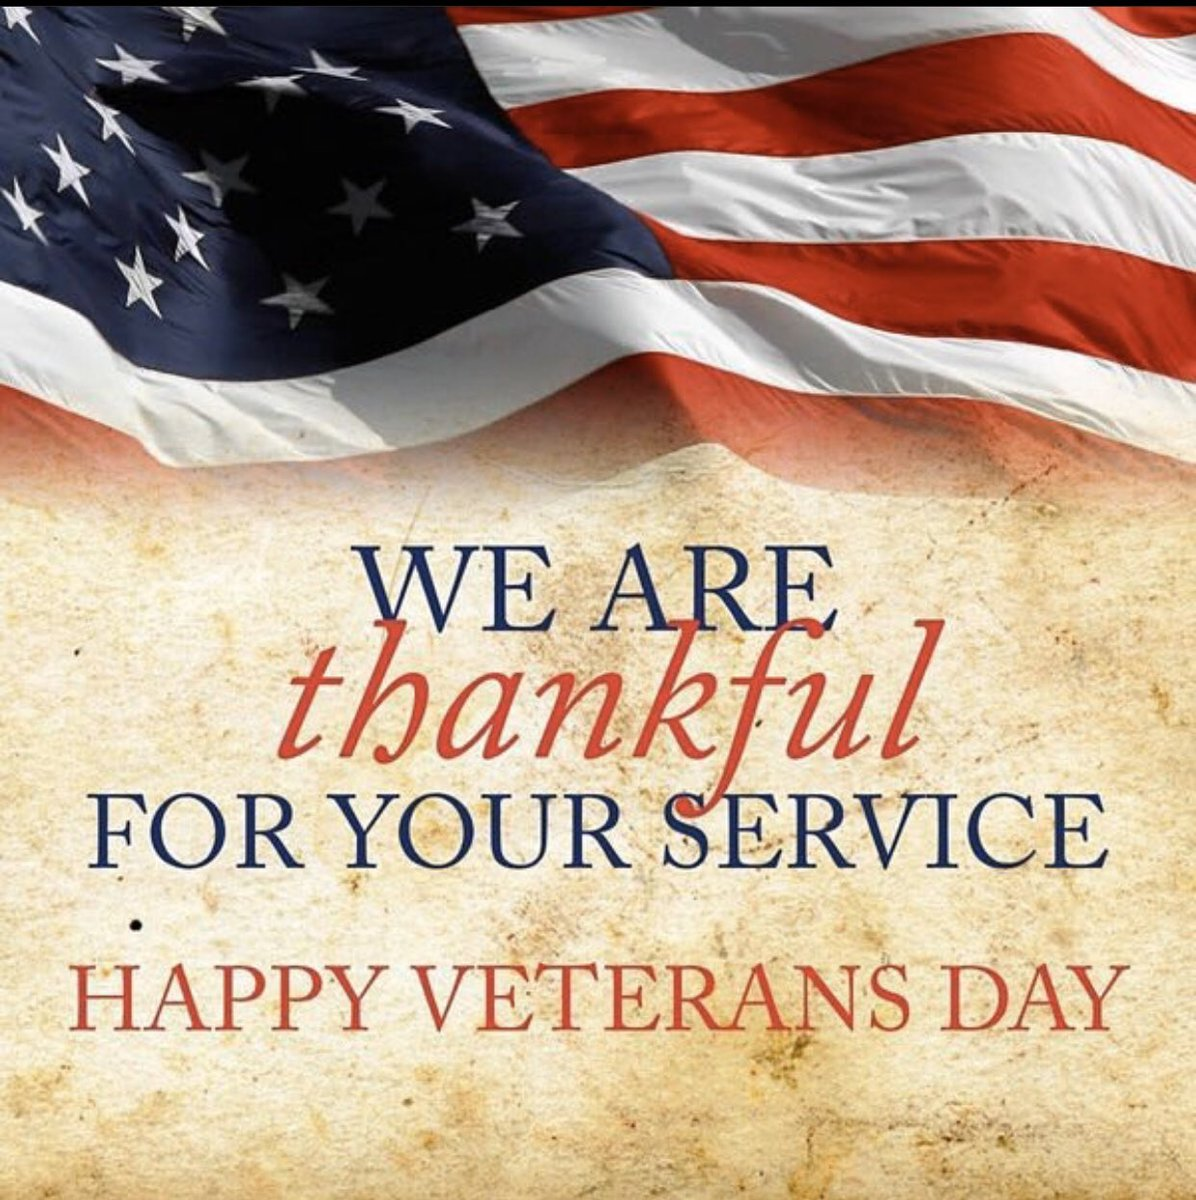 Your service will always be remembered and appreciated! Happy Veterans Day! #BisonStrong  #VeteransDay